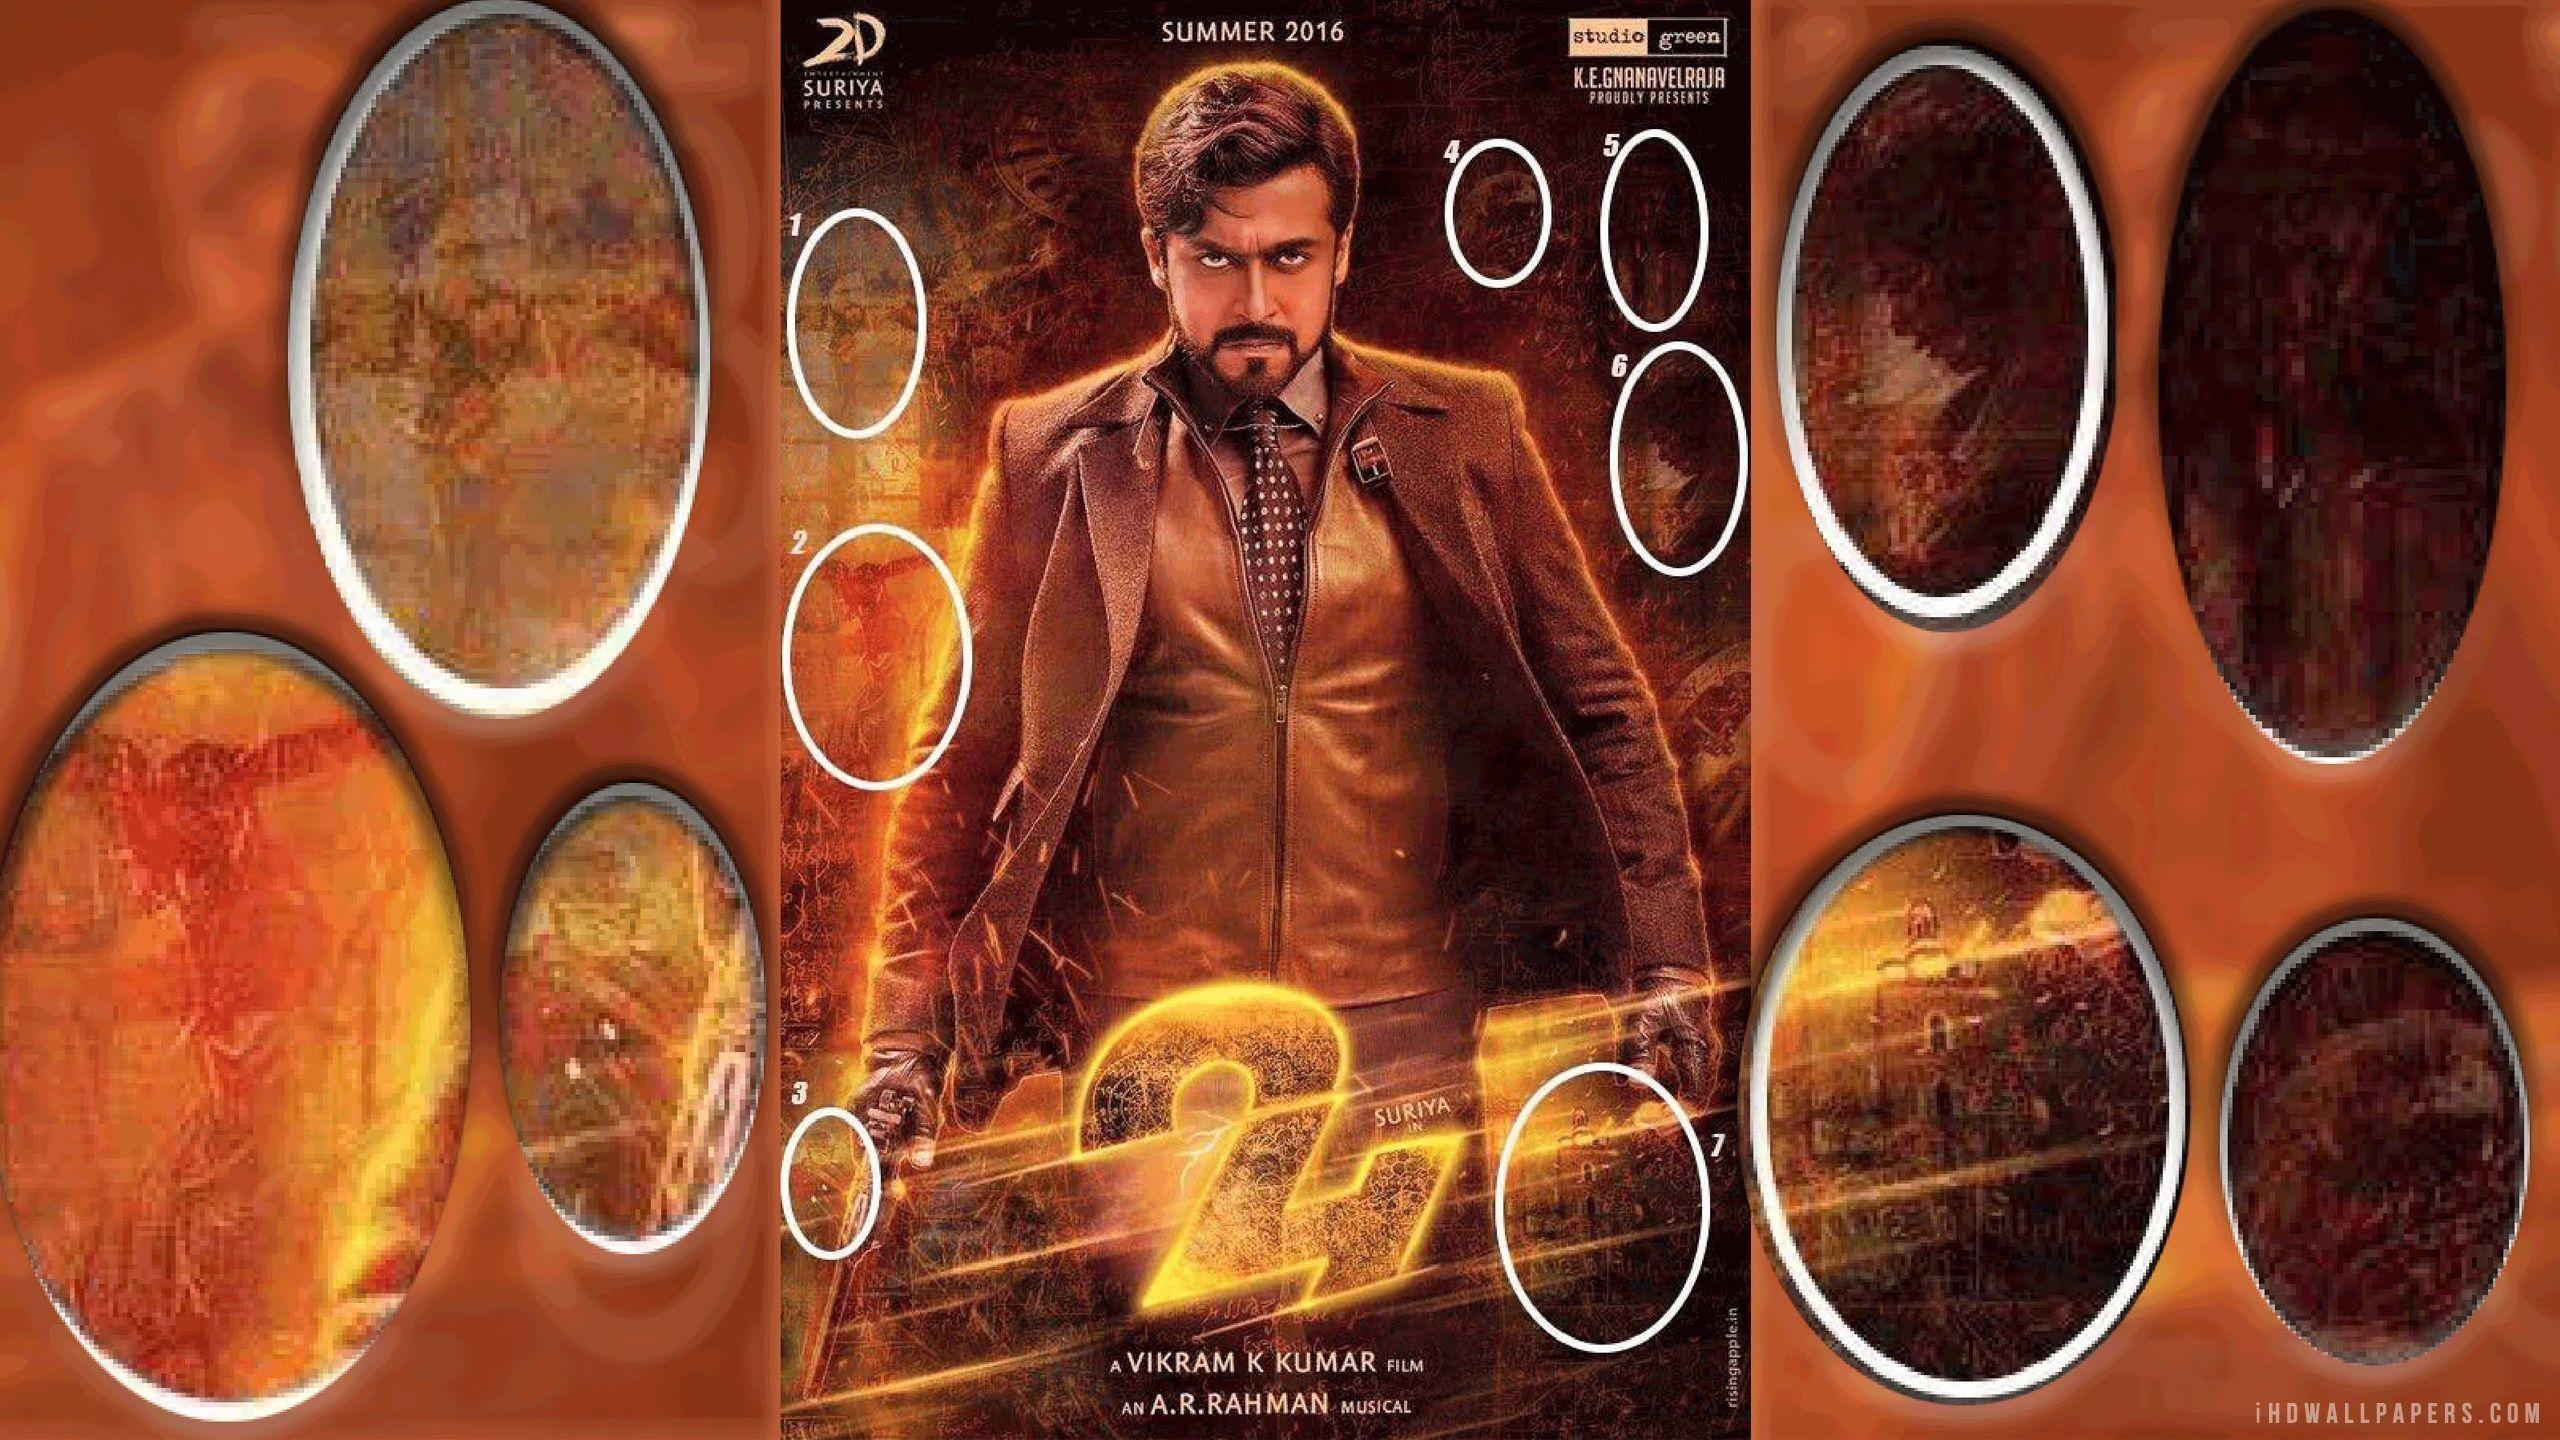 Surya hd wallpapers 2016 wallpaper cave surya 24 movie 2016 hd wallpaper ihd wallpapers altavistaventures Image collections